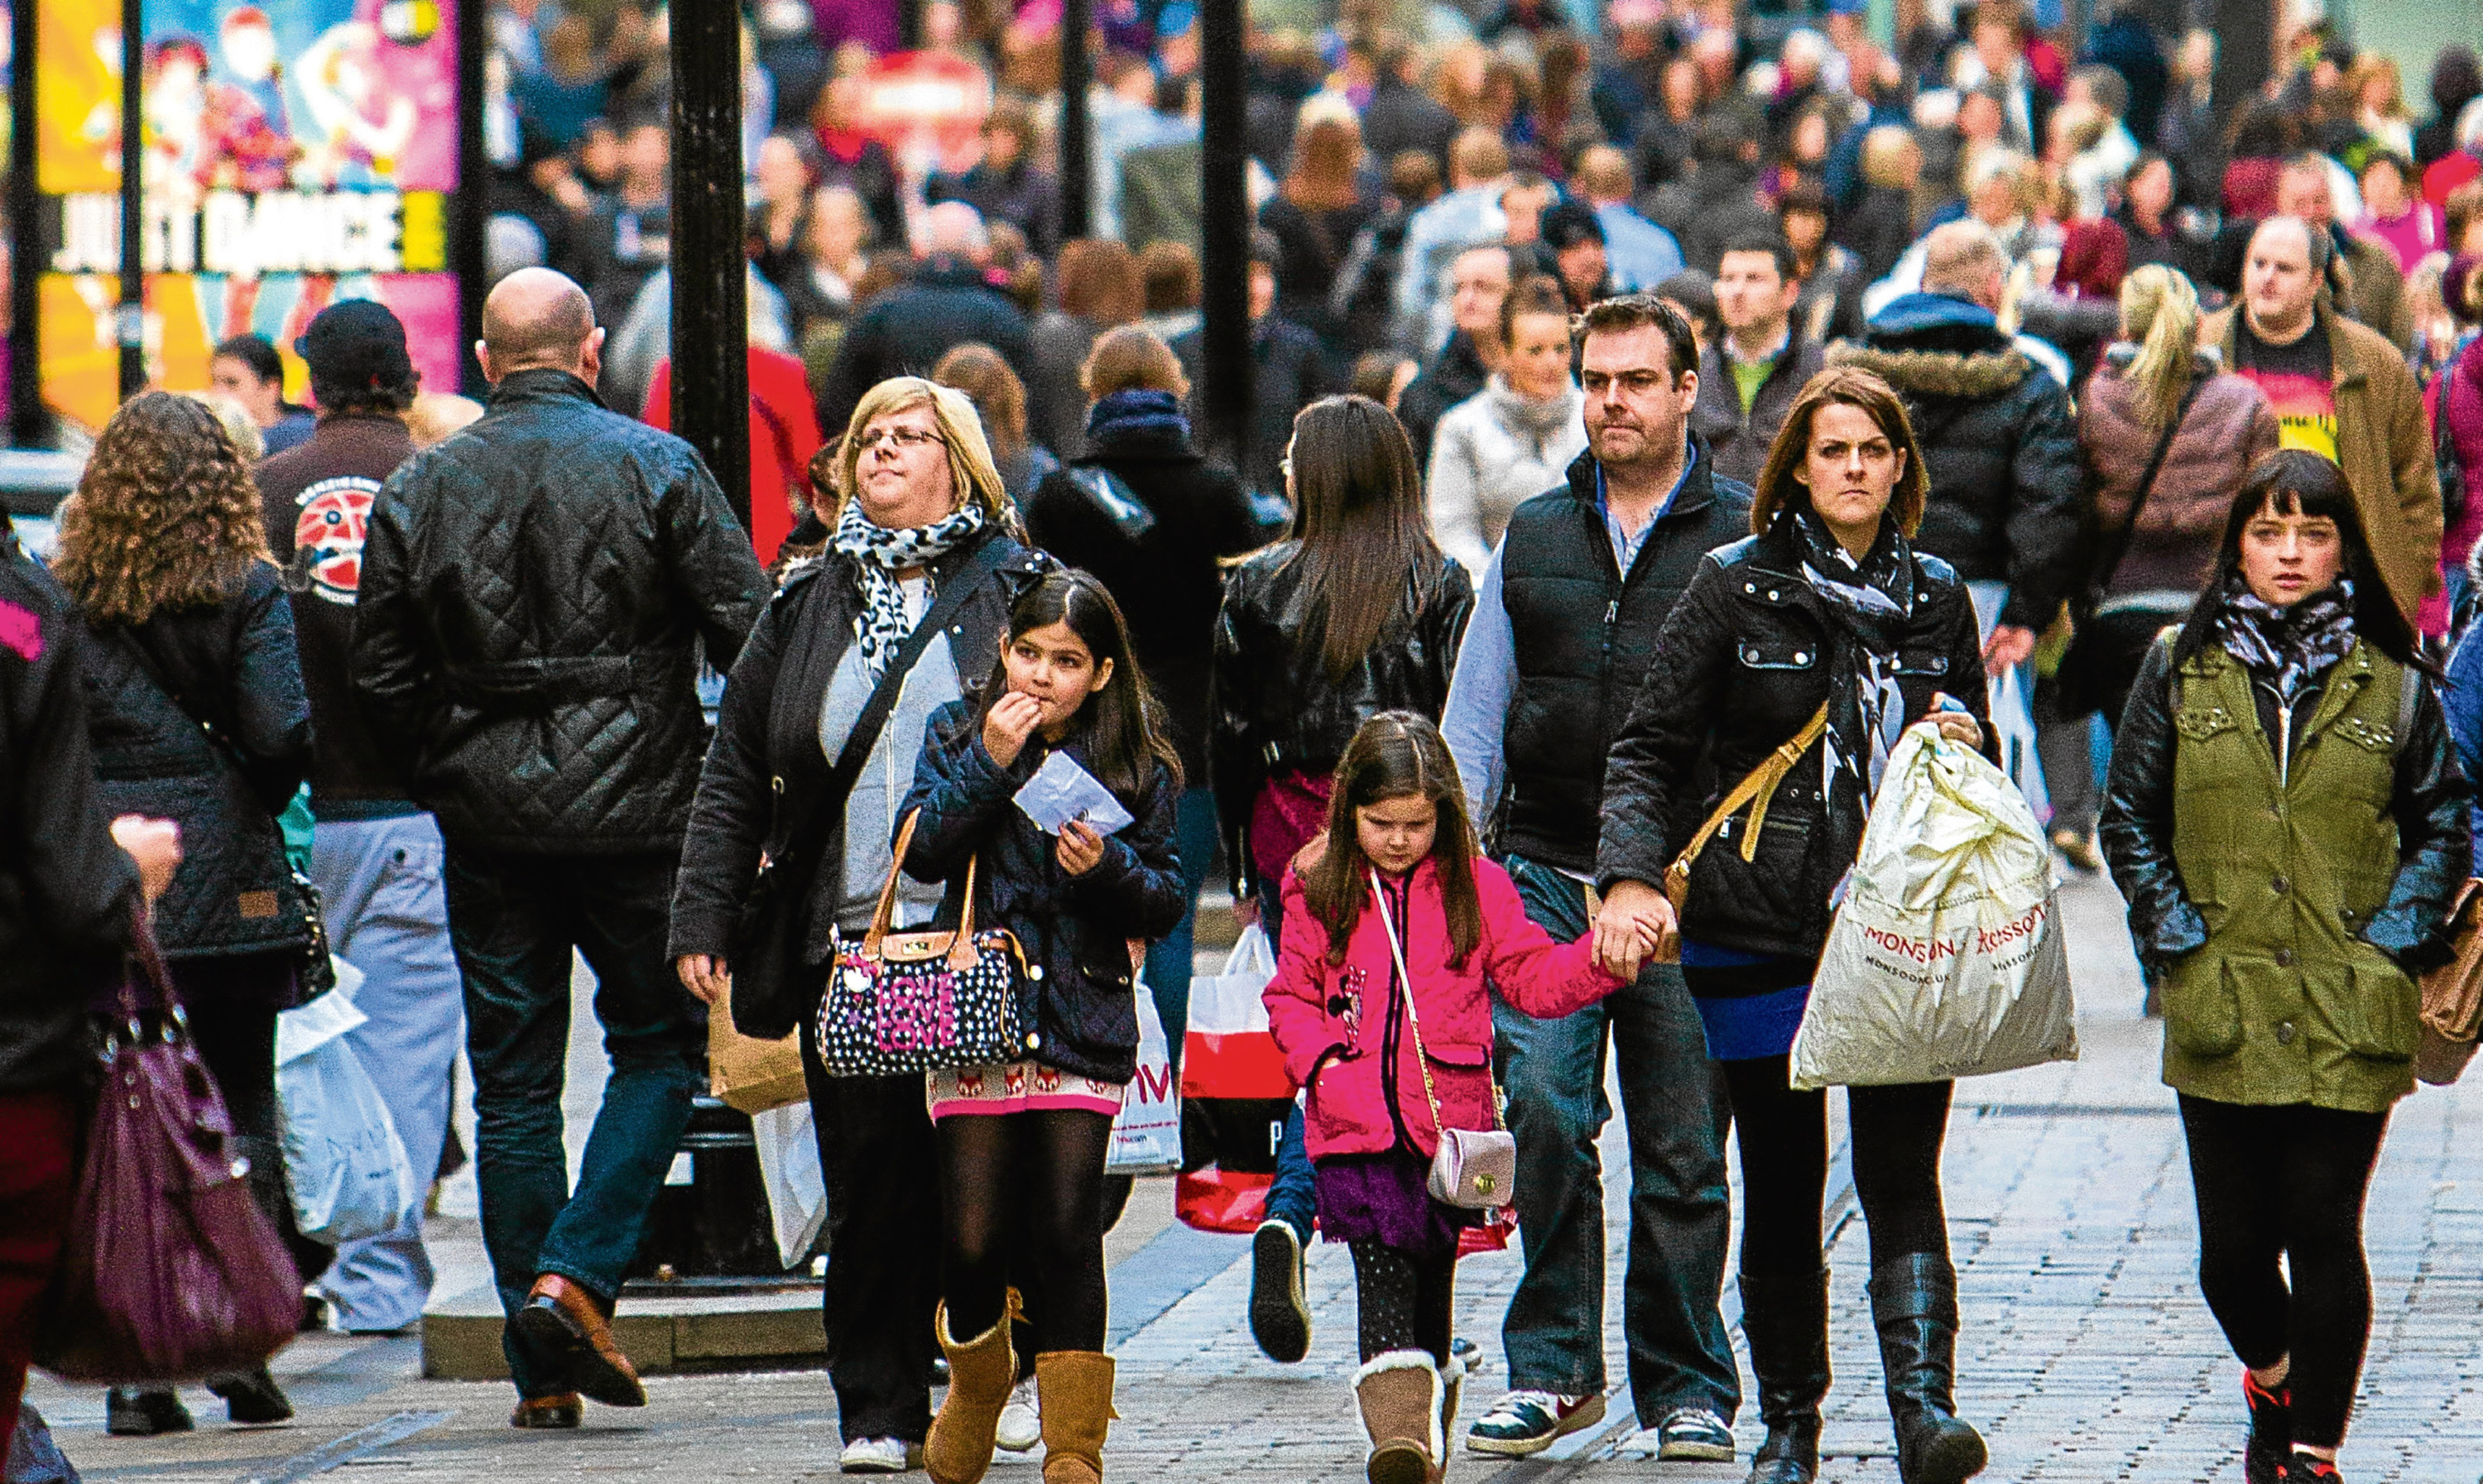 Retailers are hoping Easter weekend will provide an uplift